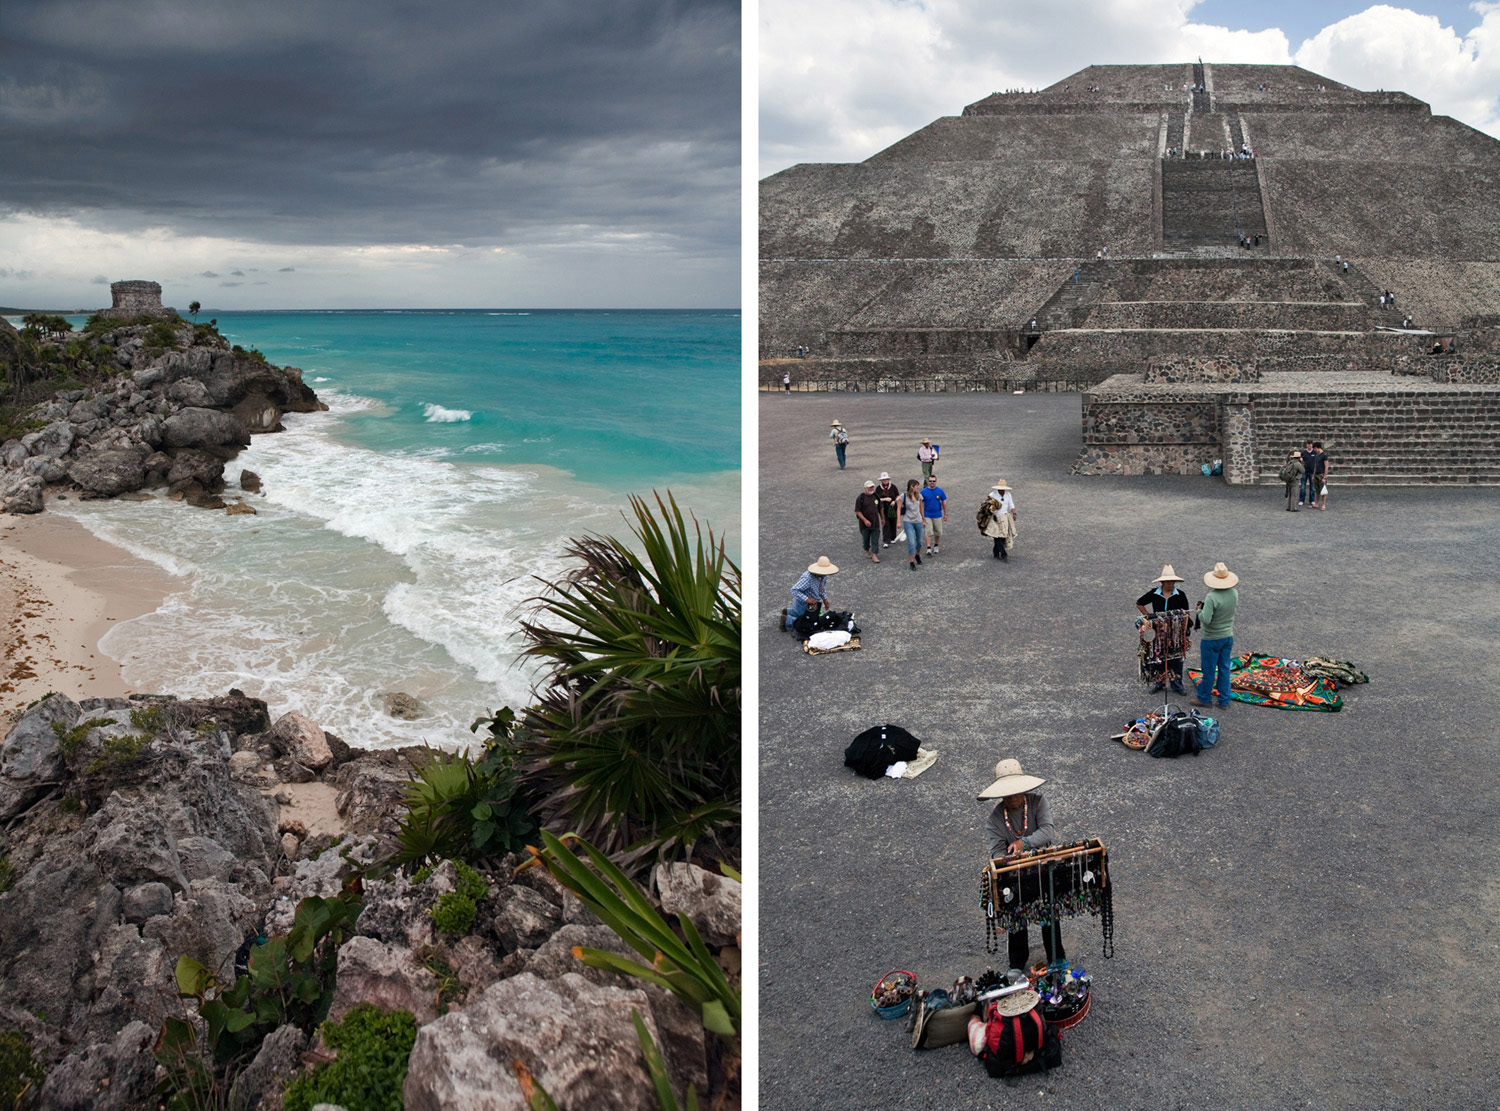 Tulum, Mexico - Teotihuacan, Mexico